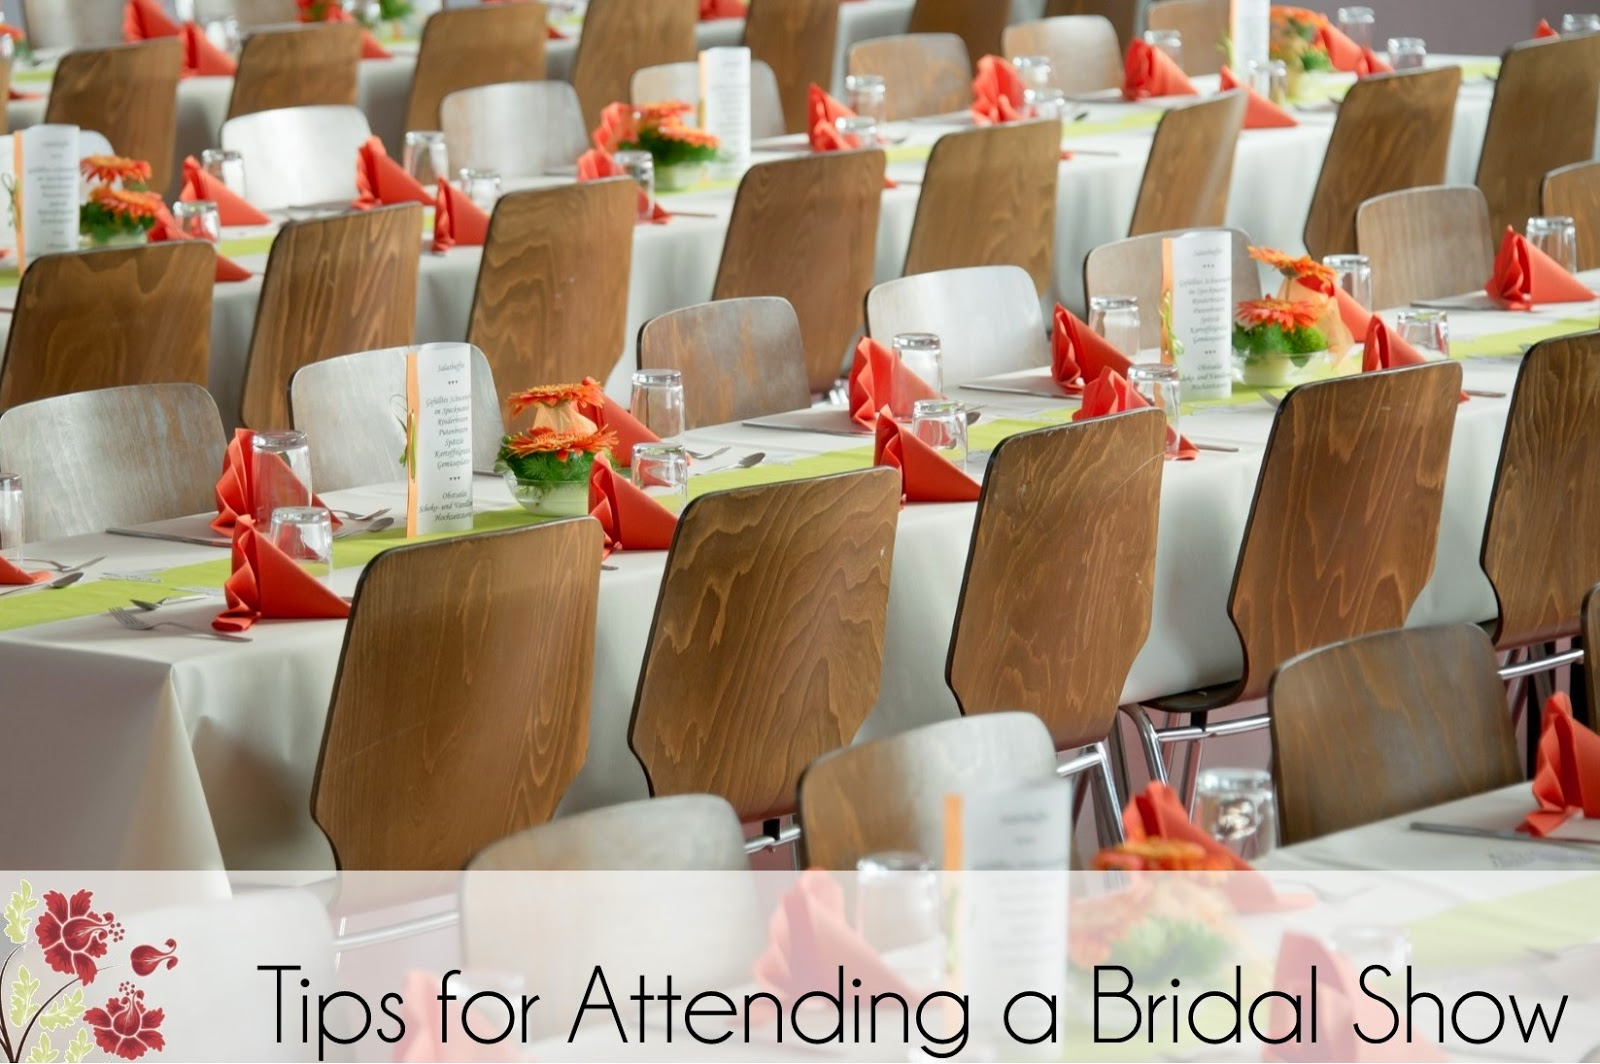 Tips for Attending a Bridal Show